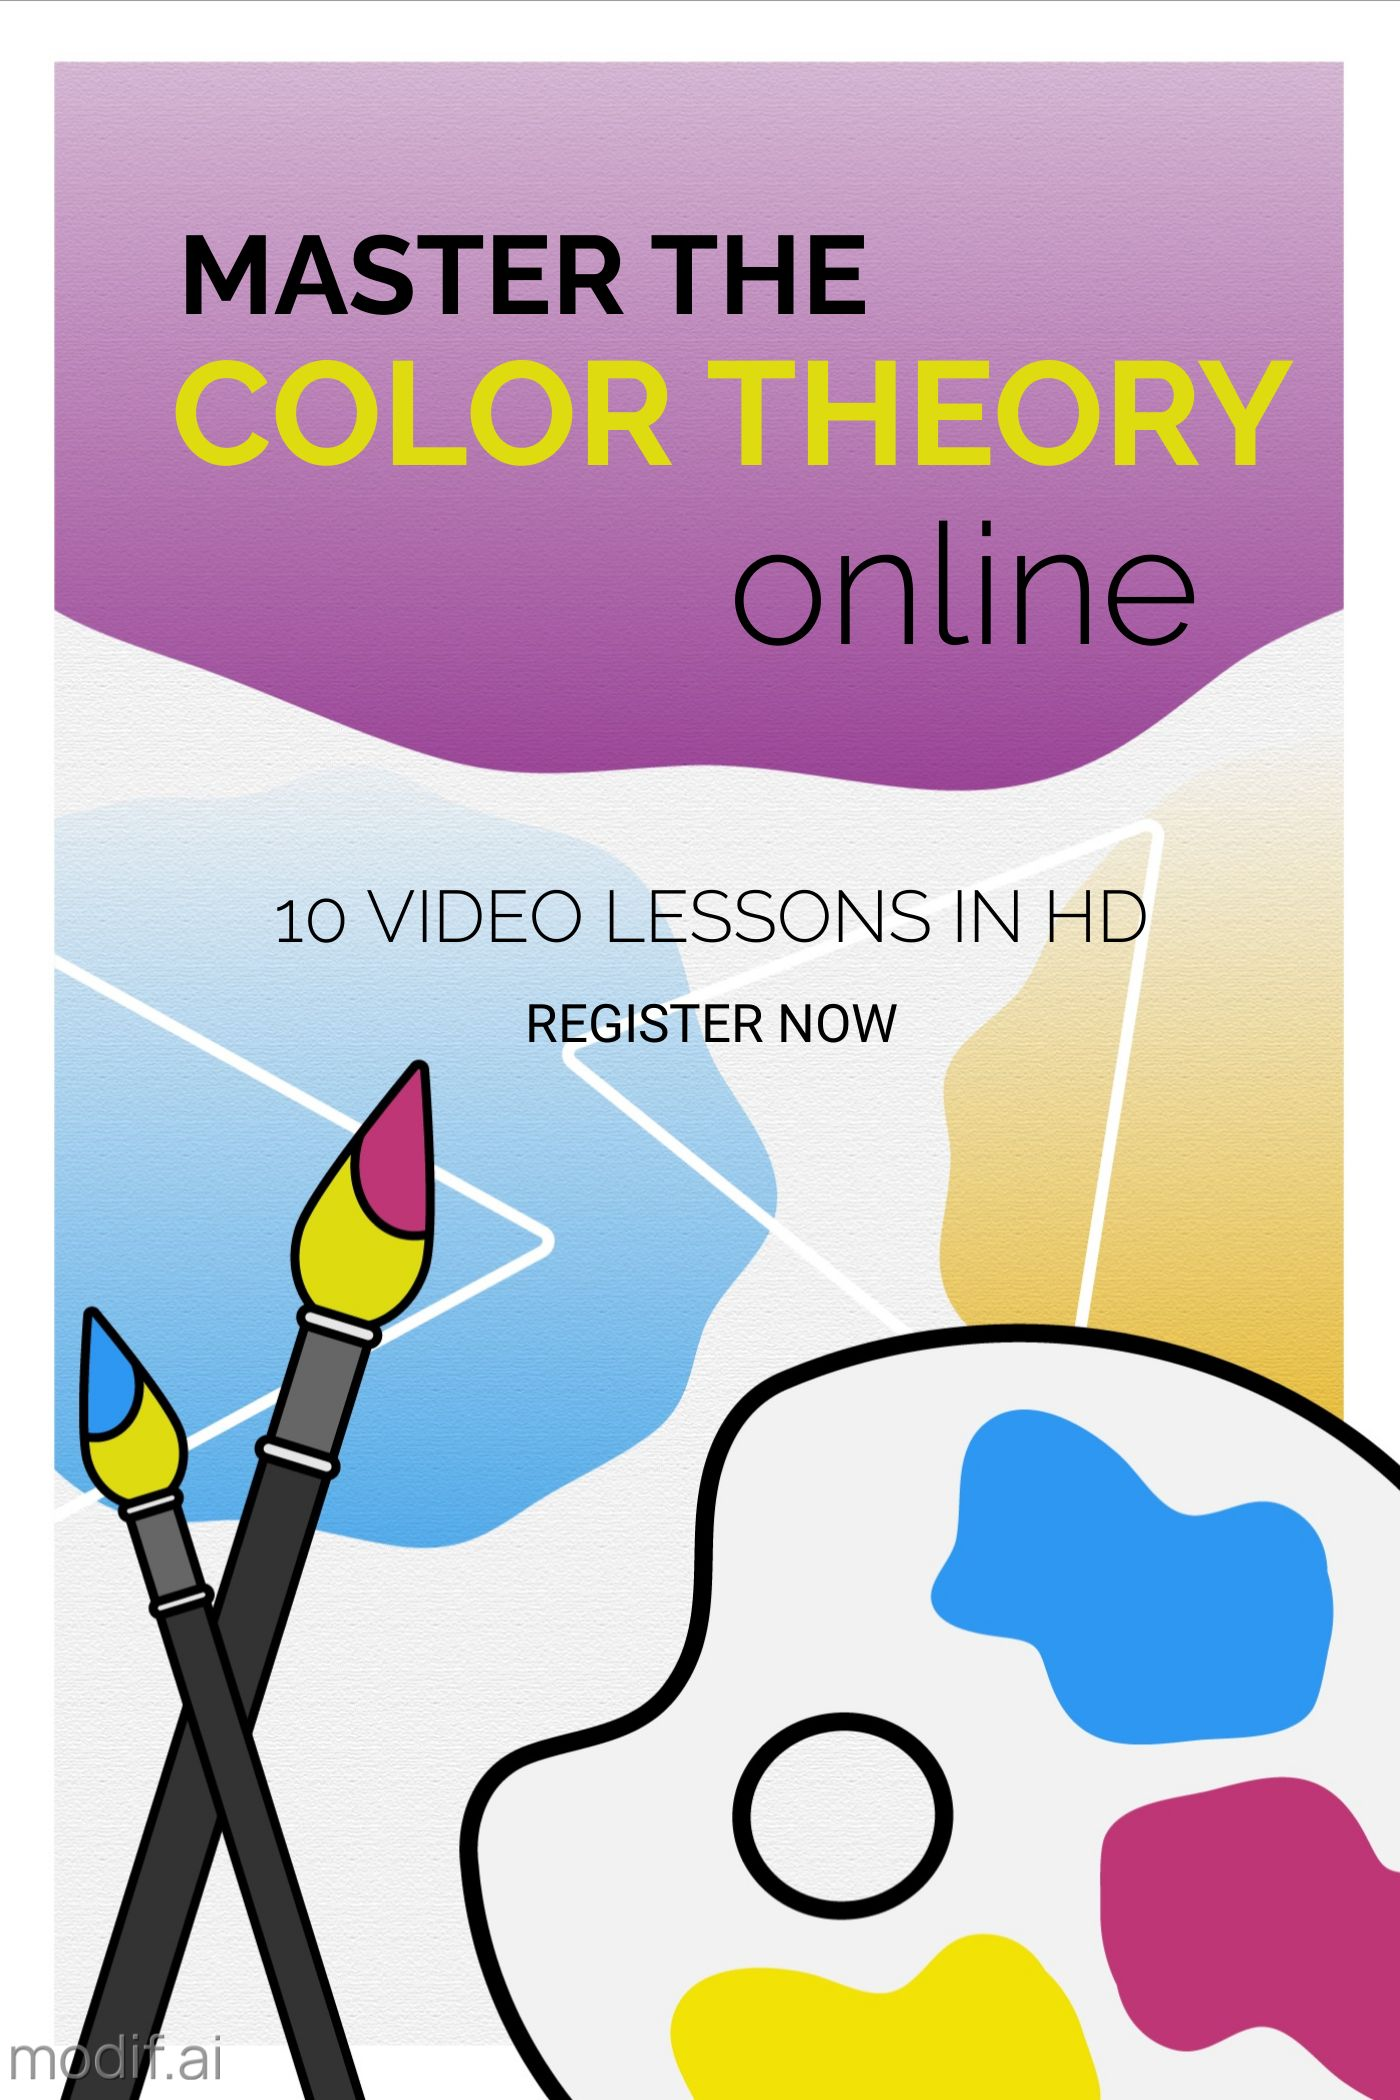 Colour Theory Online Course Book Cover Template